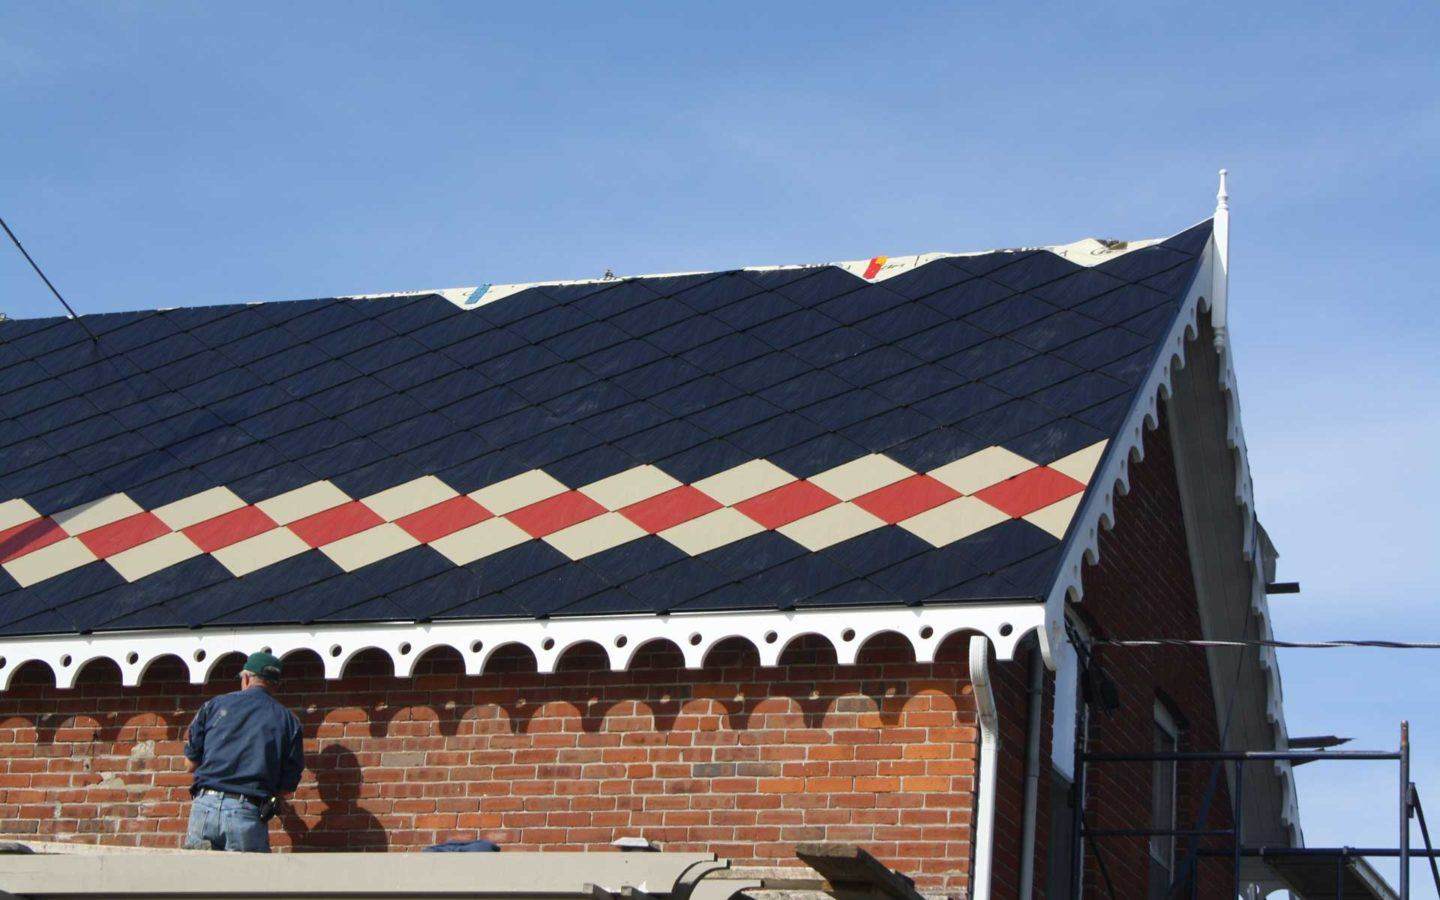 black tin roof with red and beige pattern